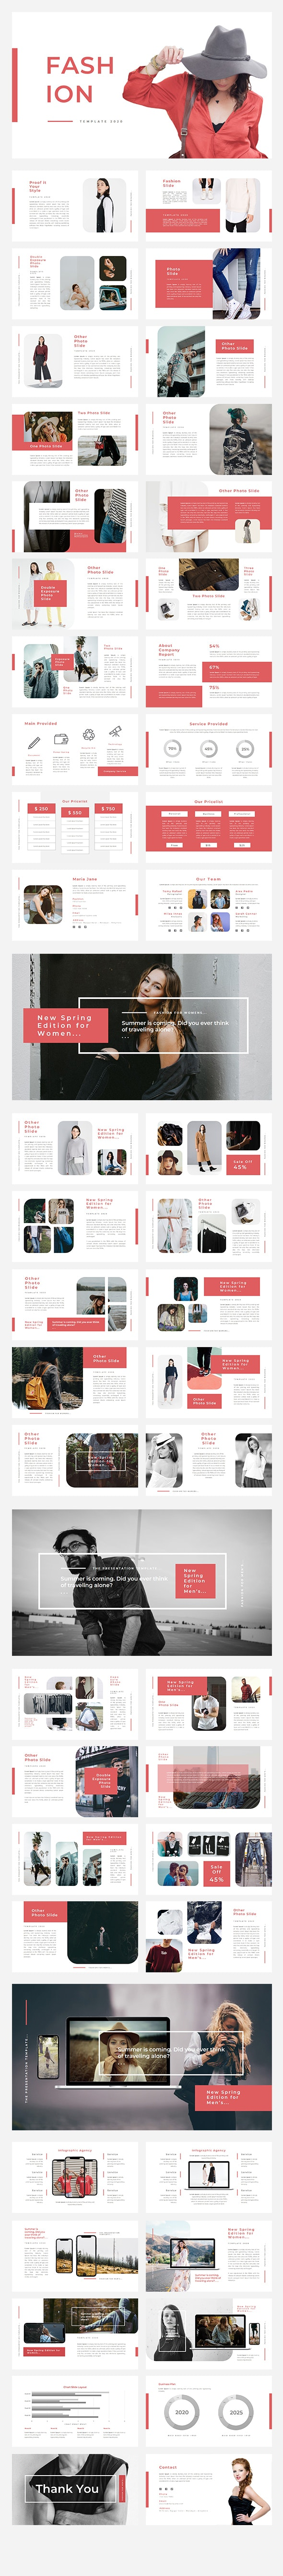 Red Fashion Presentation Template - Business PowerPoint Templates